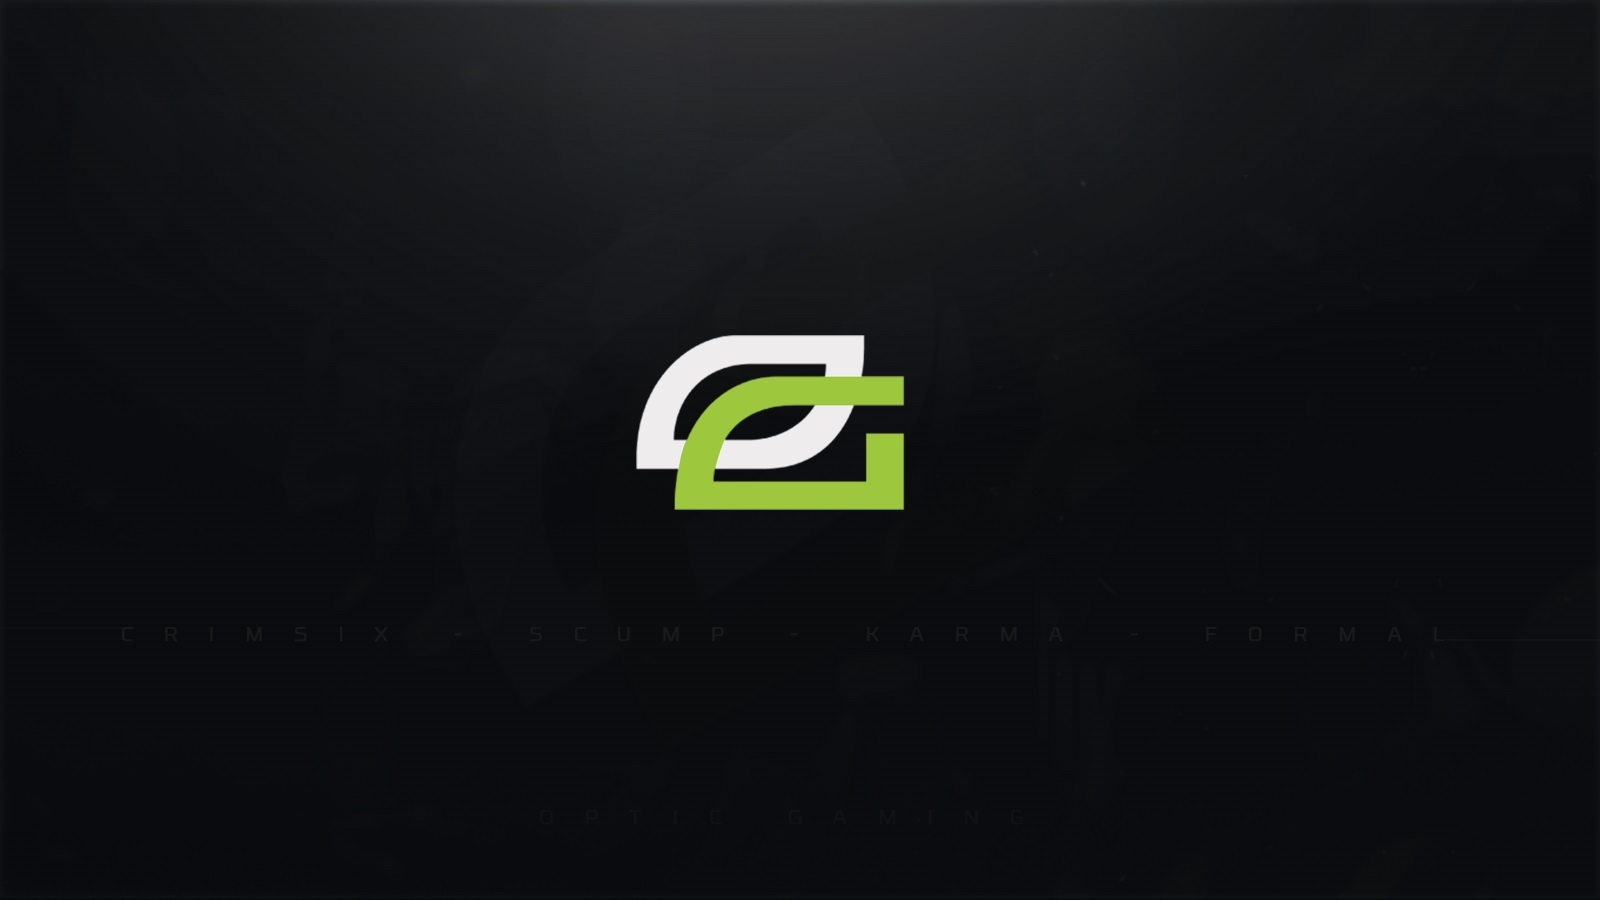 Optic Gaming Wallpaper Hd for Pinterest 1600x900